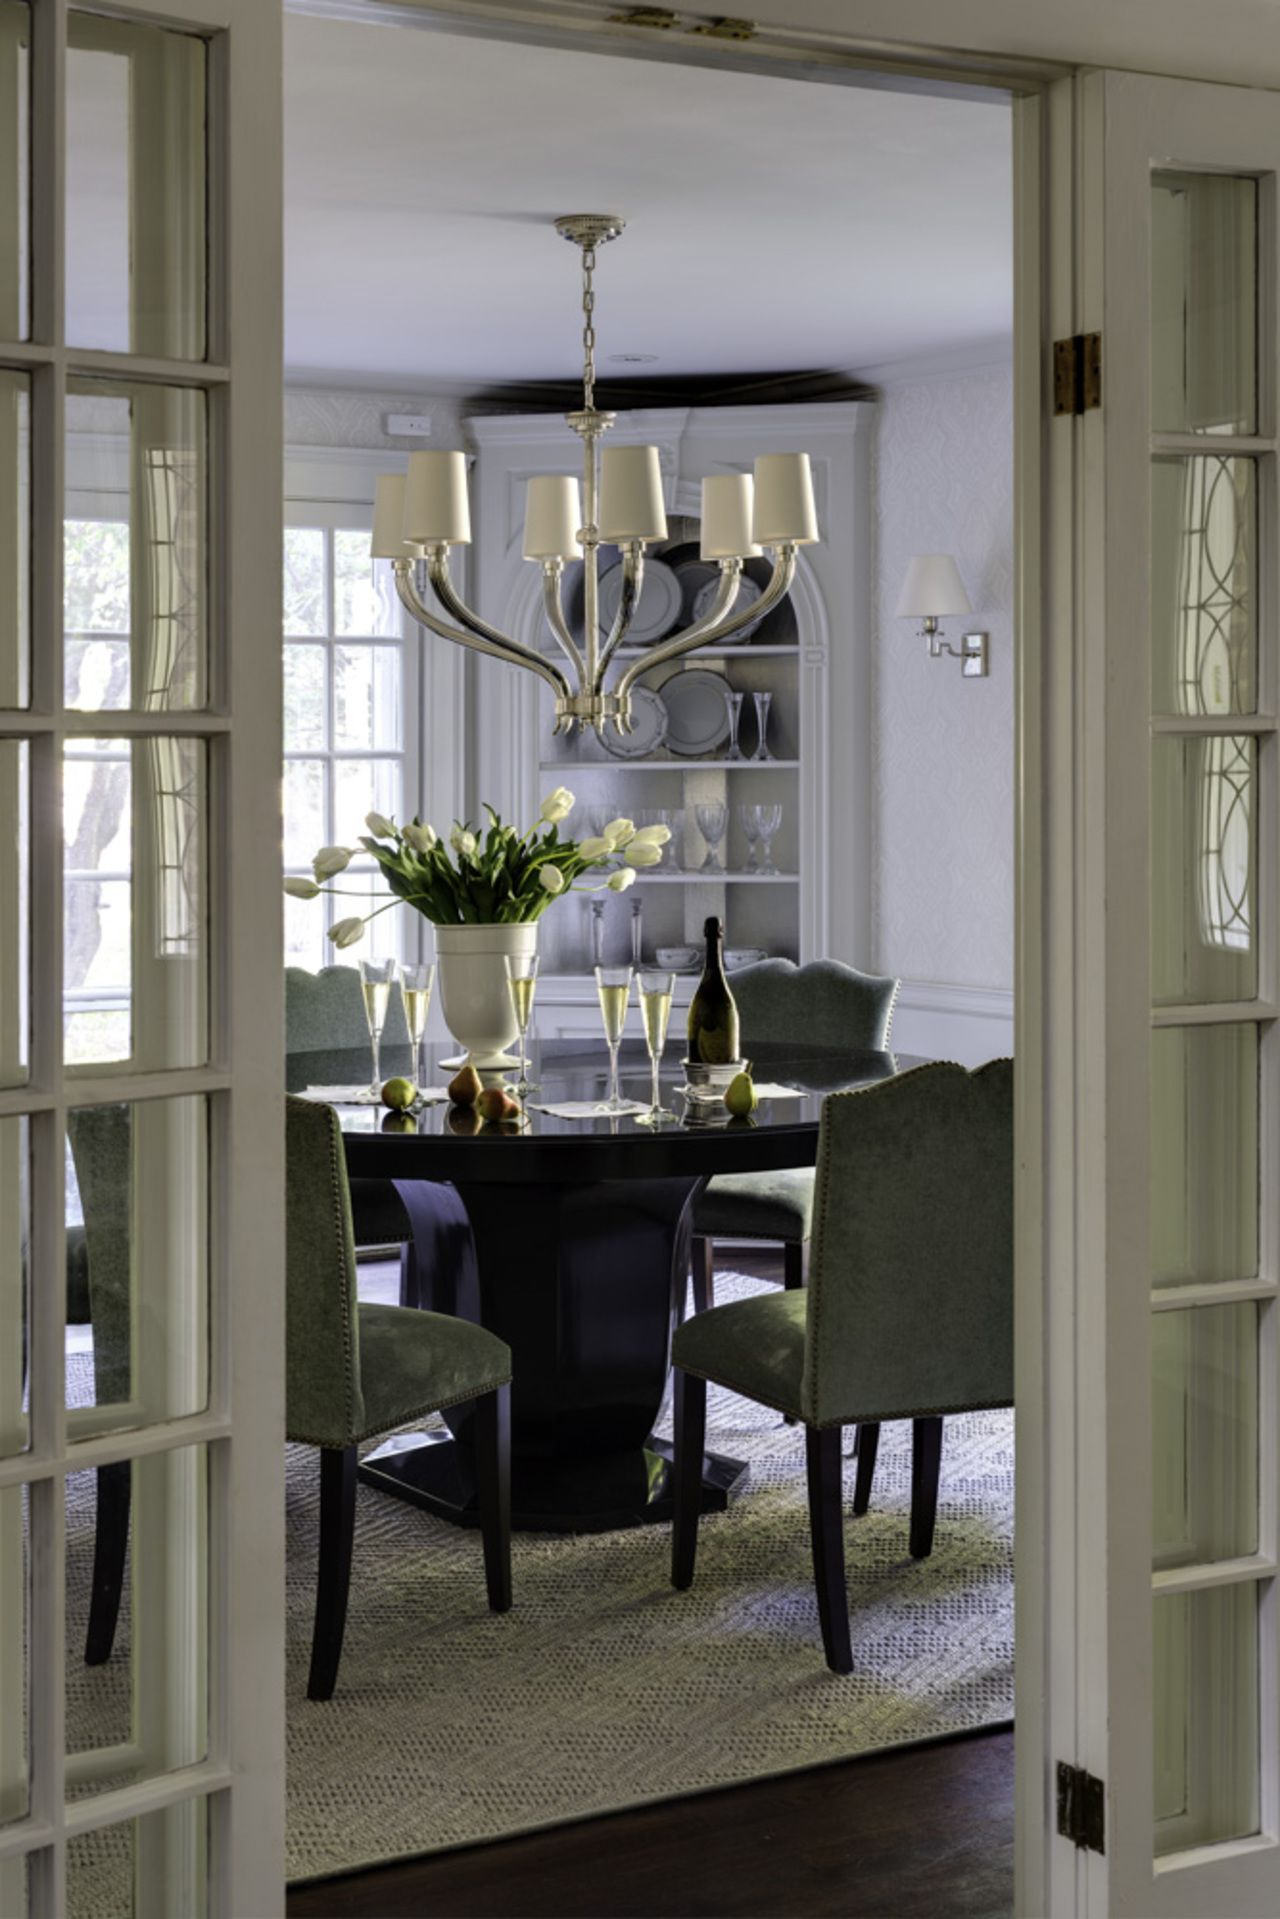 Dining room light fixtures  BHDM Design | Ruhlmann Six Light Chandelier |  Holiday decor | shop now: http: